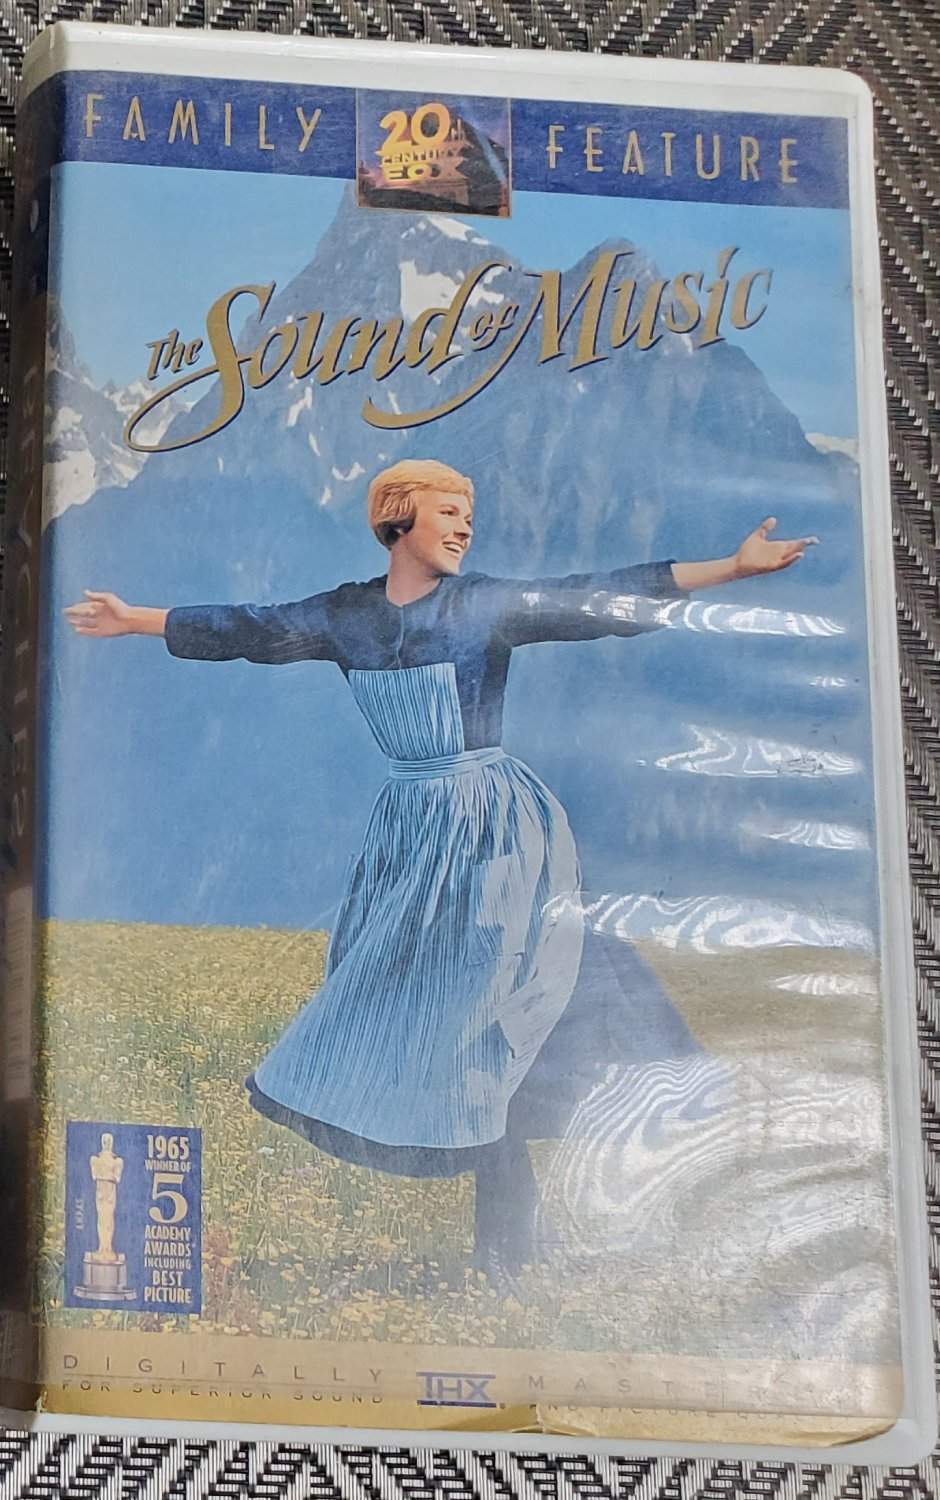 VHS Video Tape Rodgers & Hammerstein video The Sound of Music VHS Julie Andrews.